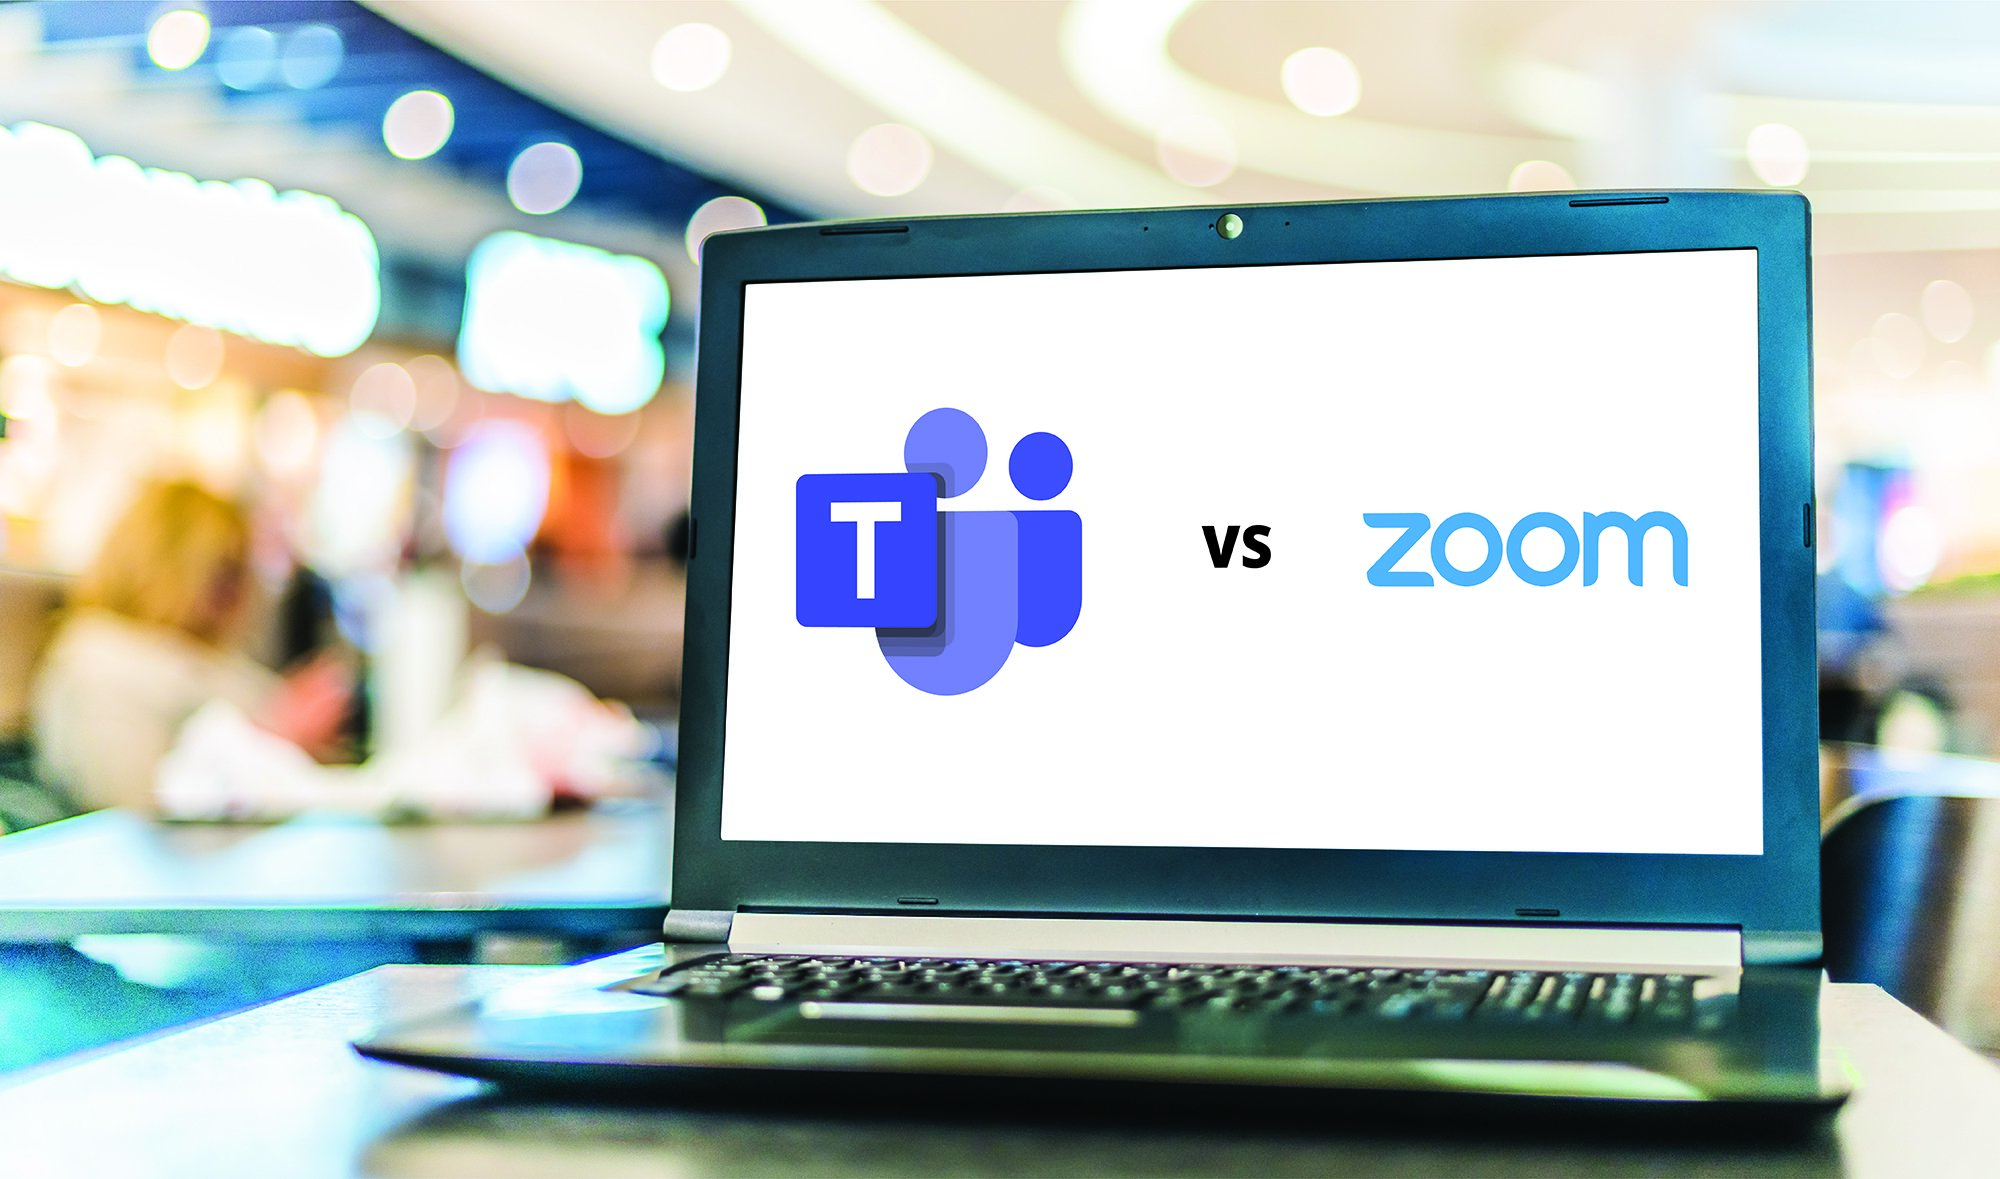 Microsoft Teams versus Zoom: Which is Better for Enterprise Organizations?